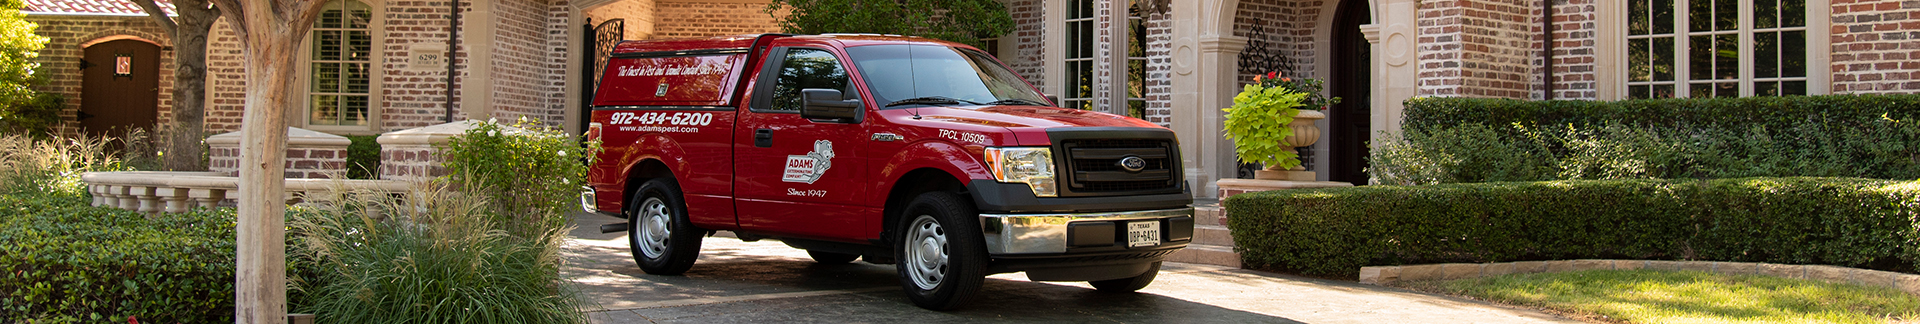 adams pest control's truck in coppell tx